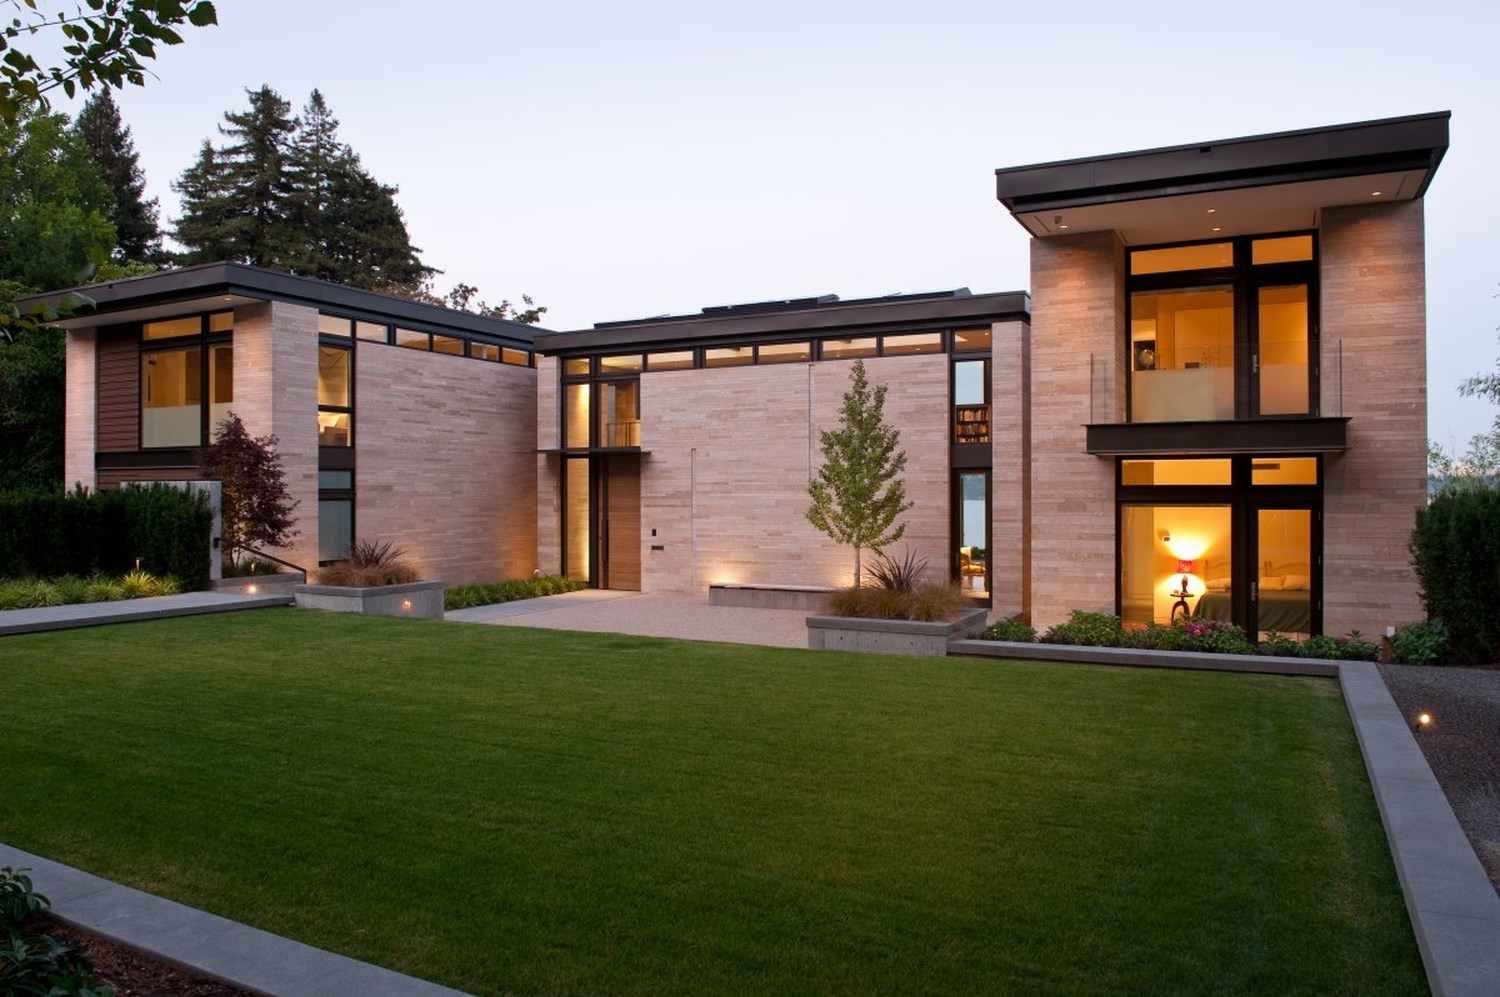 washington park hilltop residence by stuart silk